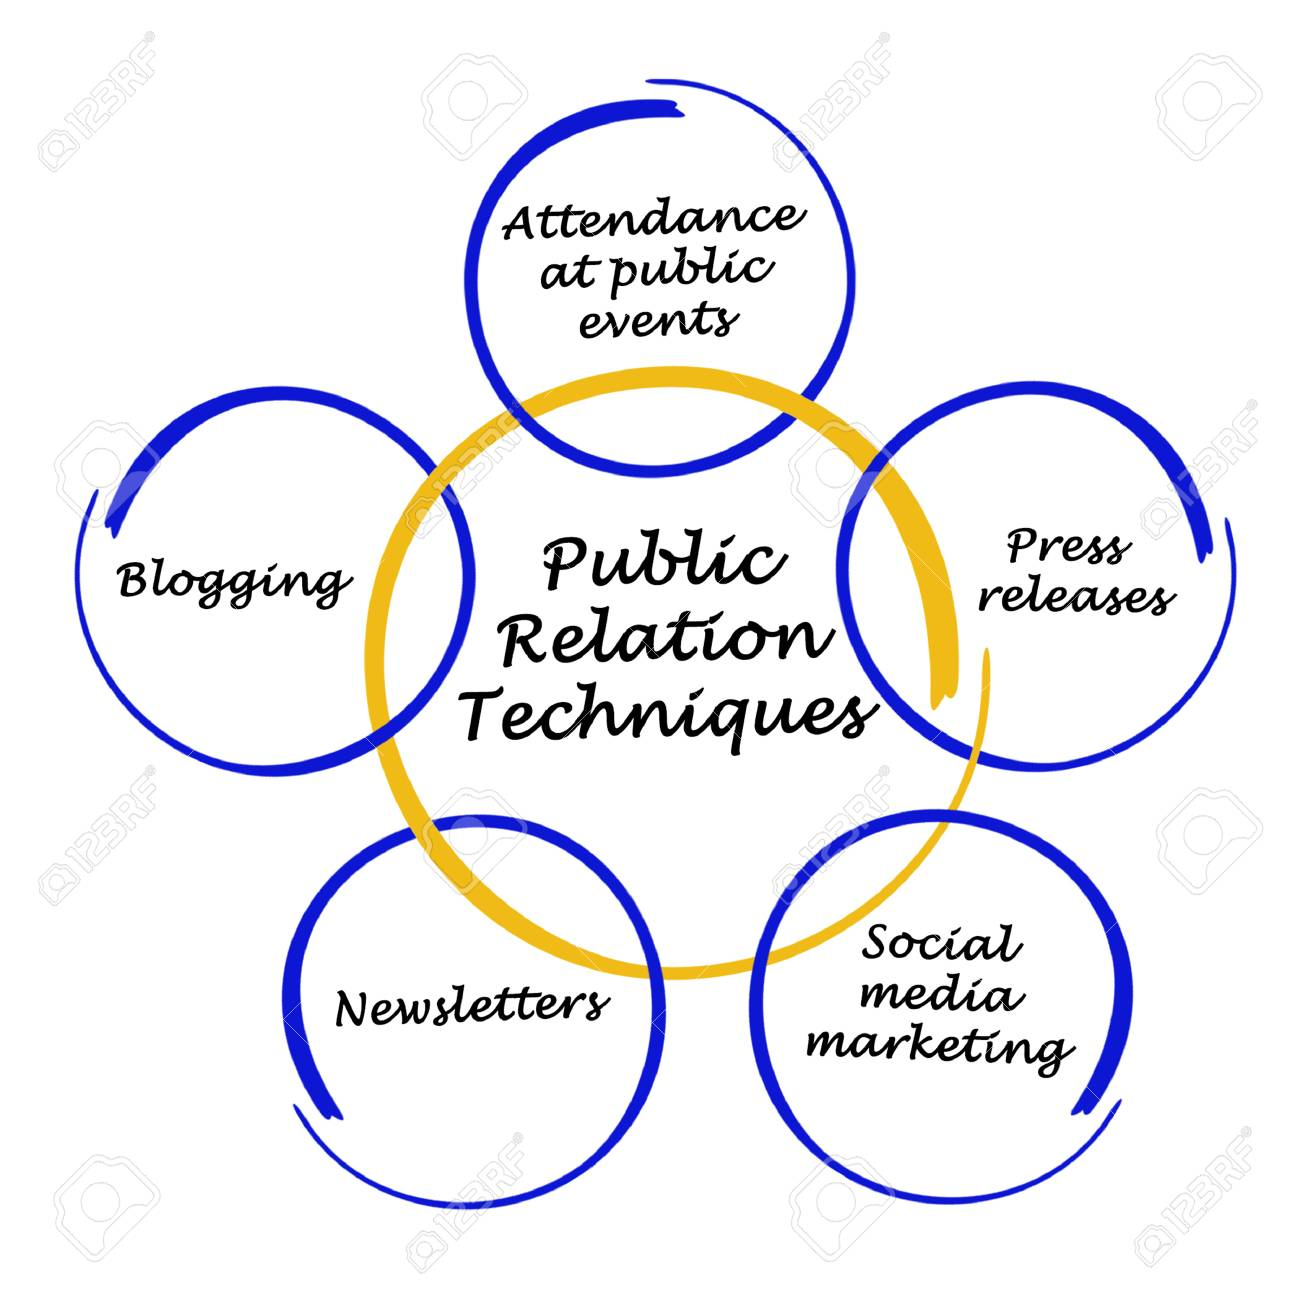 Public Relation Techniques Stock Photo Picture And Royalty Free Image Image 45130395